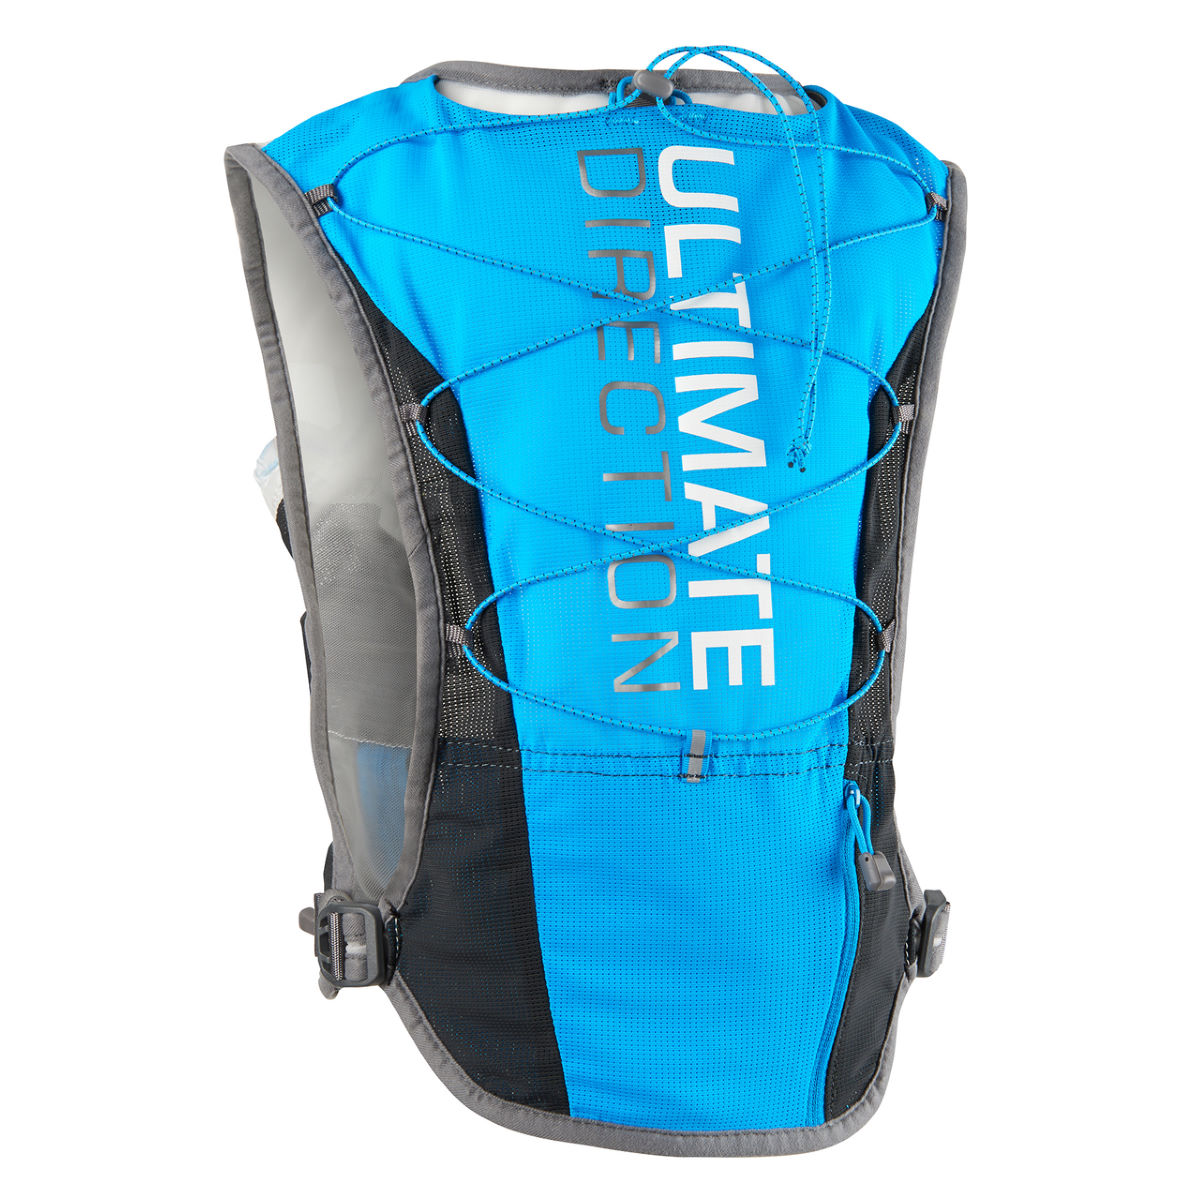 Sac à dos Ultimate Direction Scott Jurek Ultra 3.0 - L Noir Sacs d'hydratation